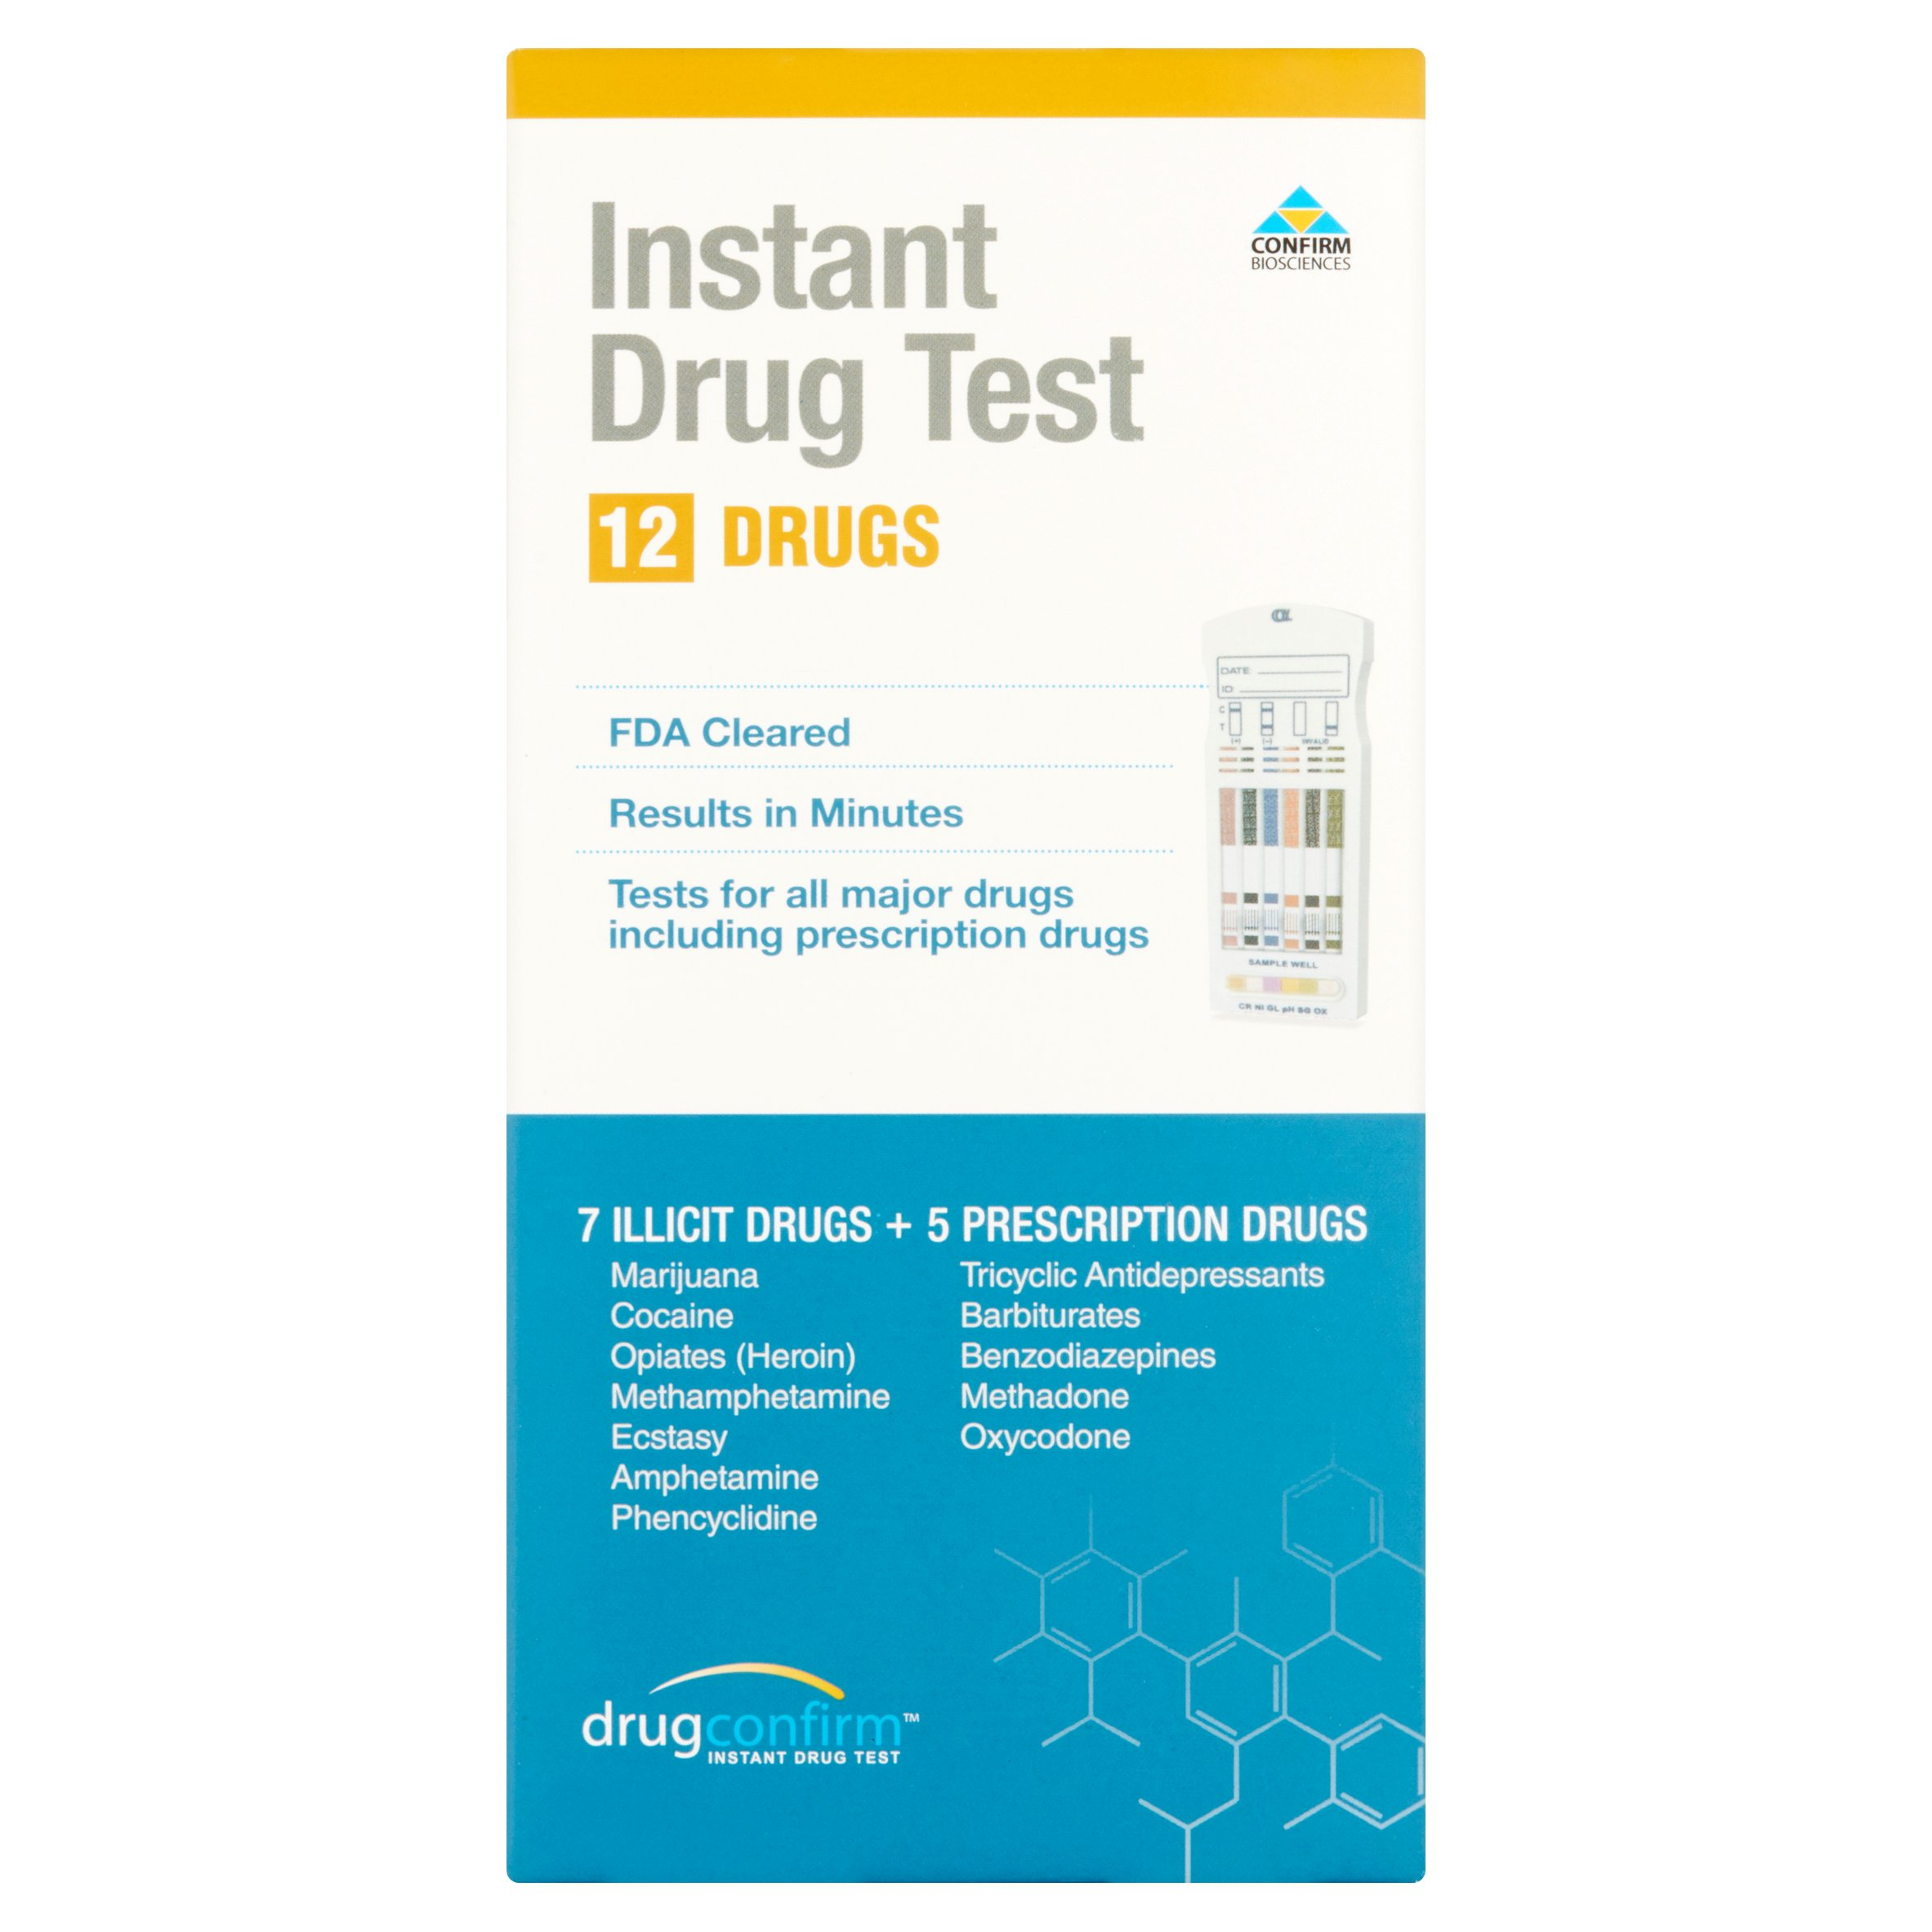 DrugConfirm Instant Drug Test for 12 Drugs